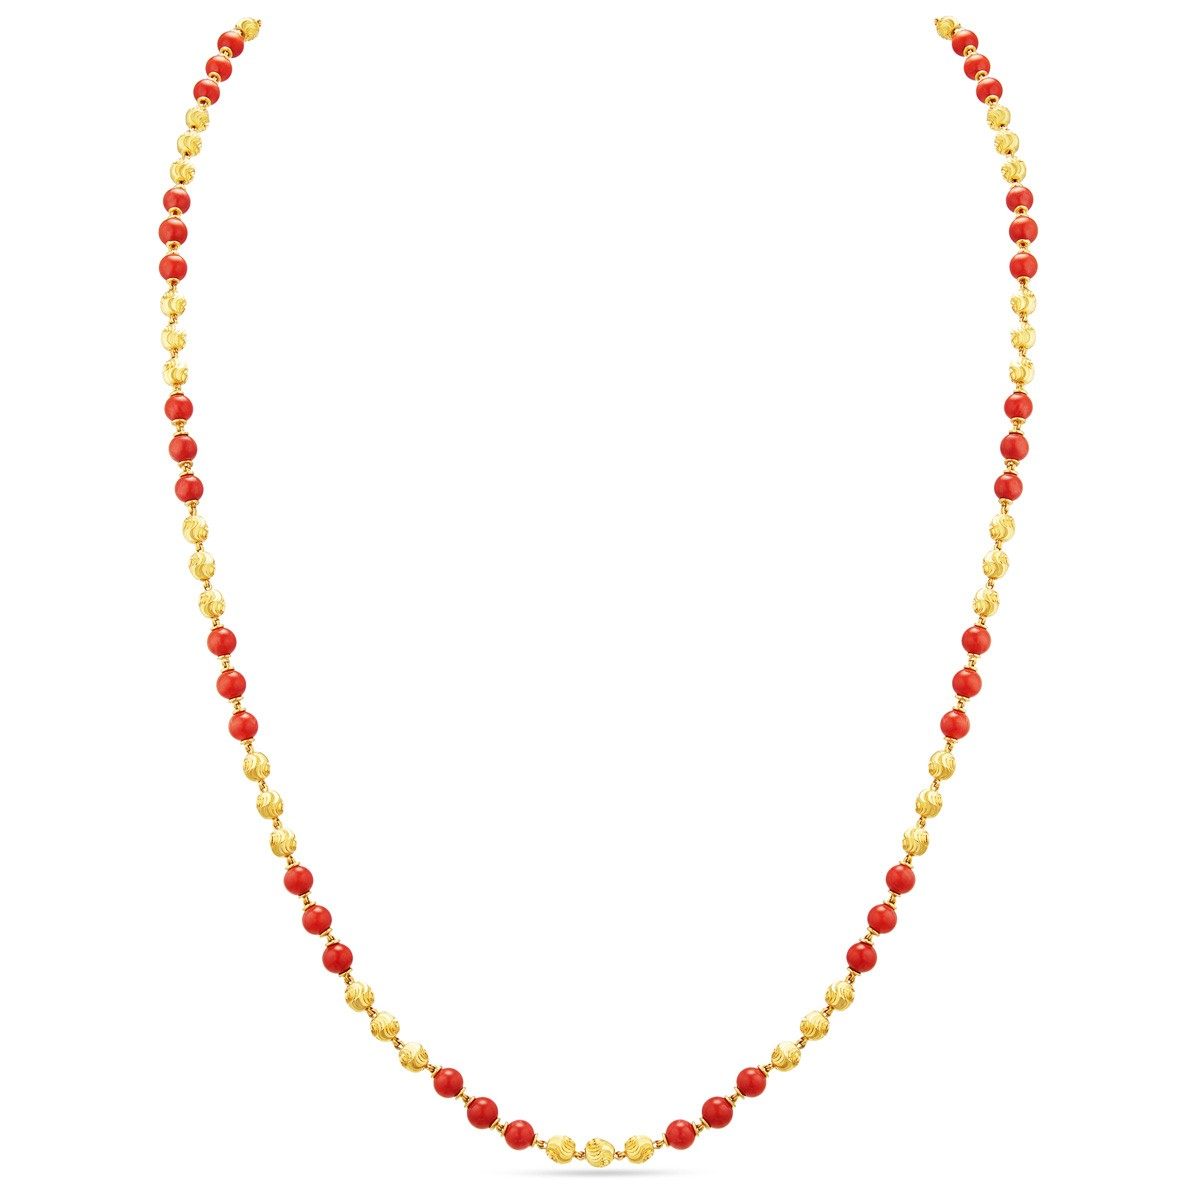 Buy Red Balls Design Gold Chain | Small Beads Gold Chain Online